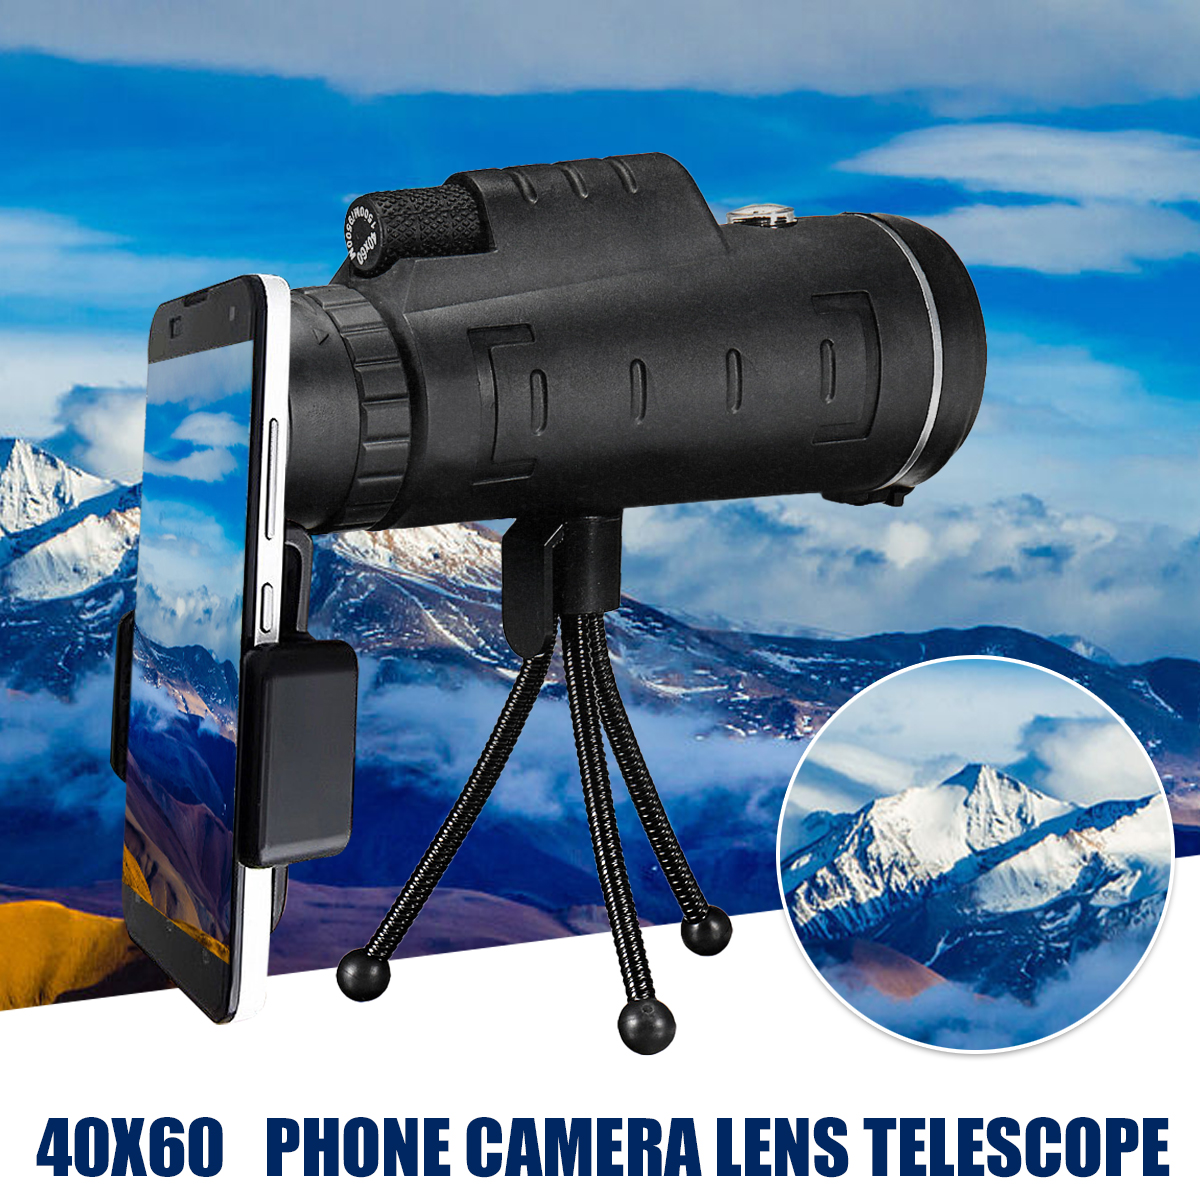 40X60 Monocular Telescope HD Dual Focus Optical Zoom Scope Day Night Vision Waterproof w/Cell Phone Tripod For Hiking Camping Hunting Sightseeing